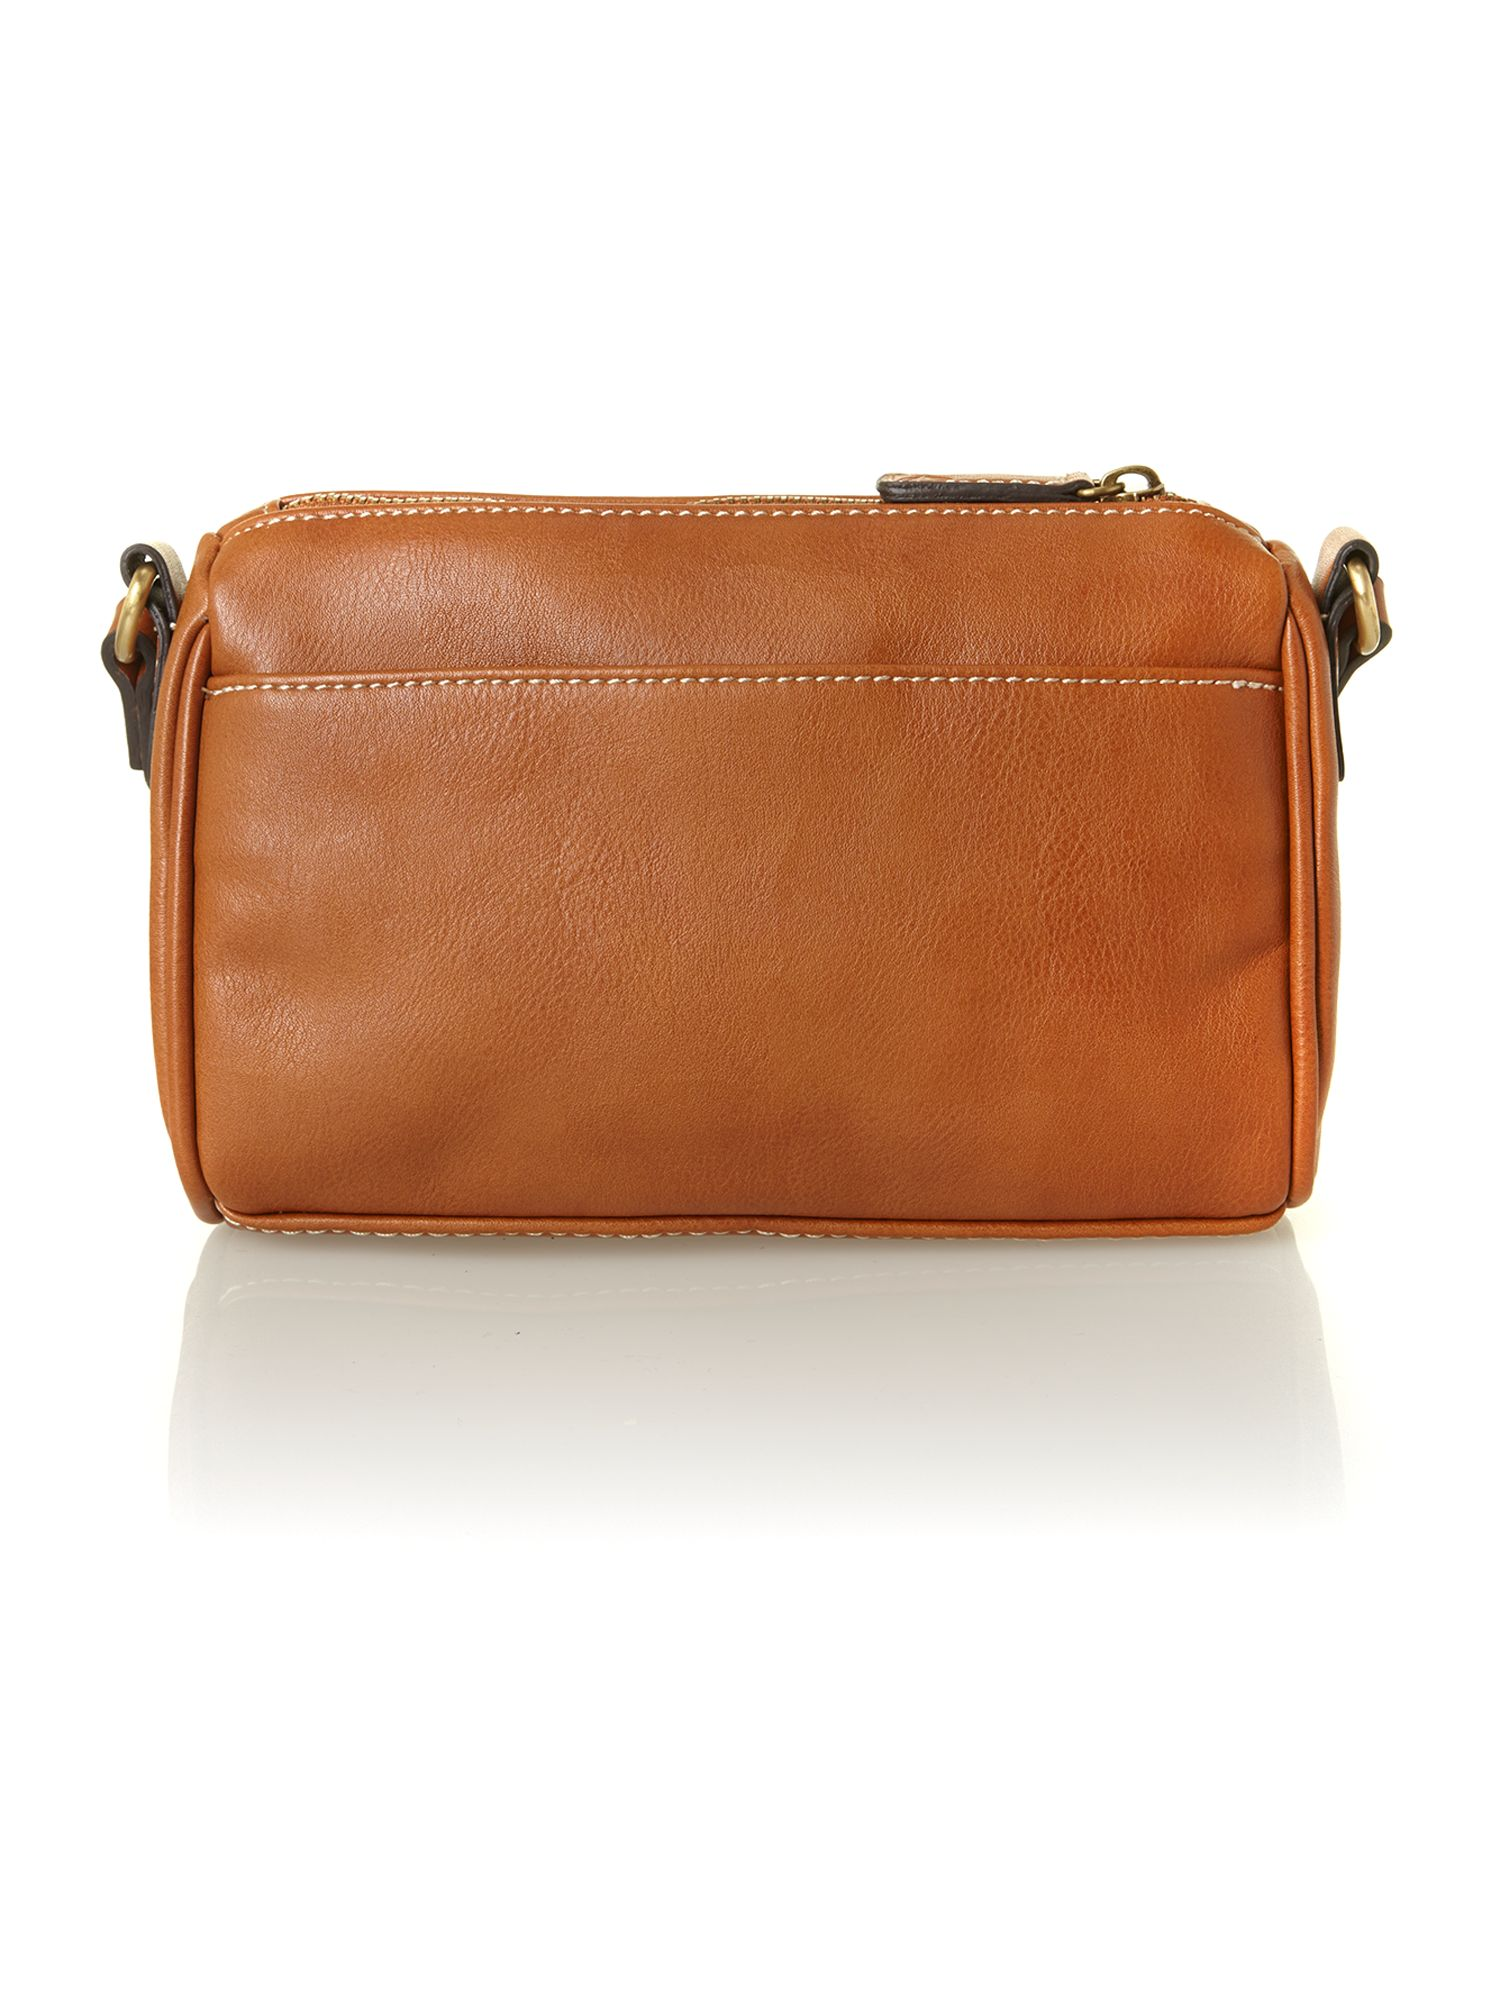 Madison brown crossbody bag